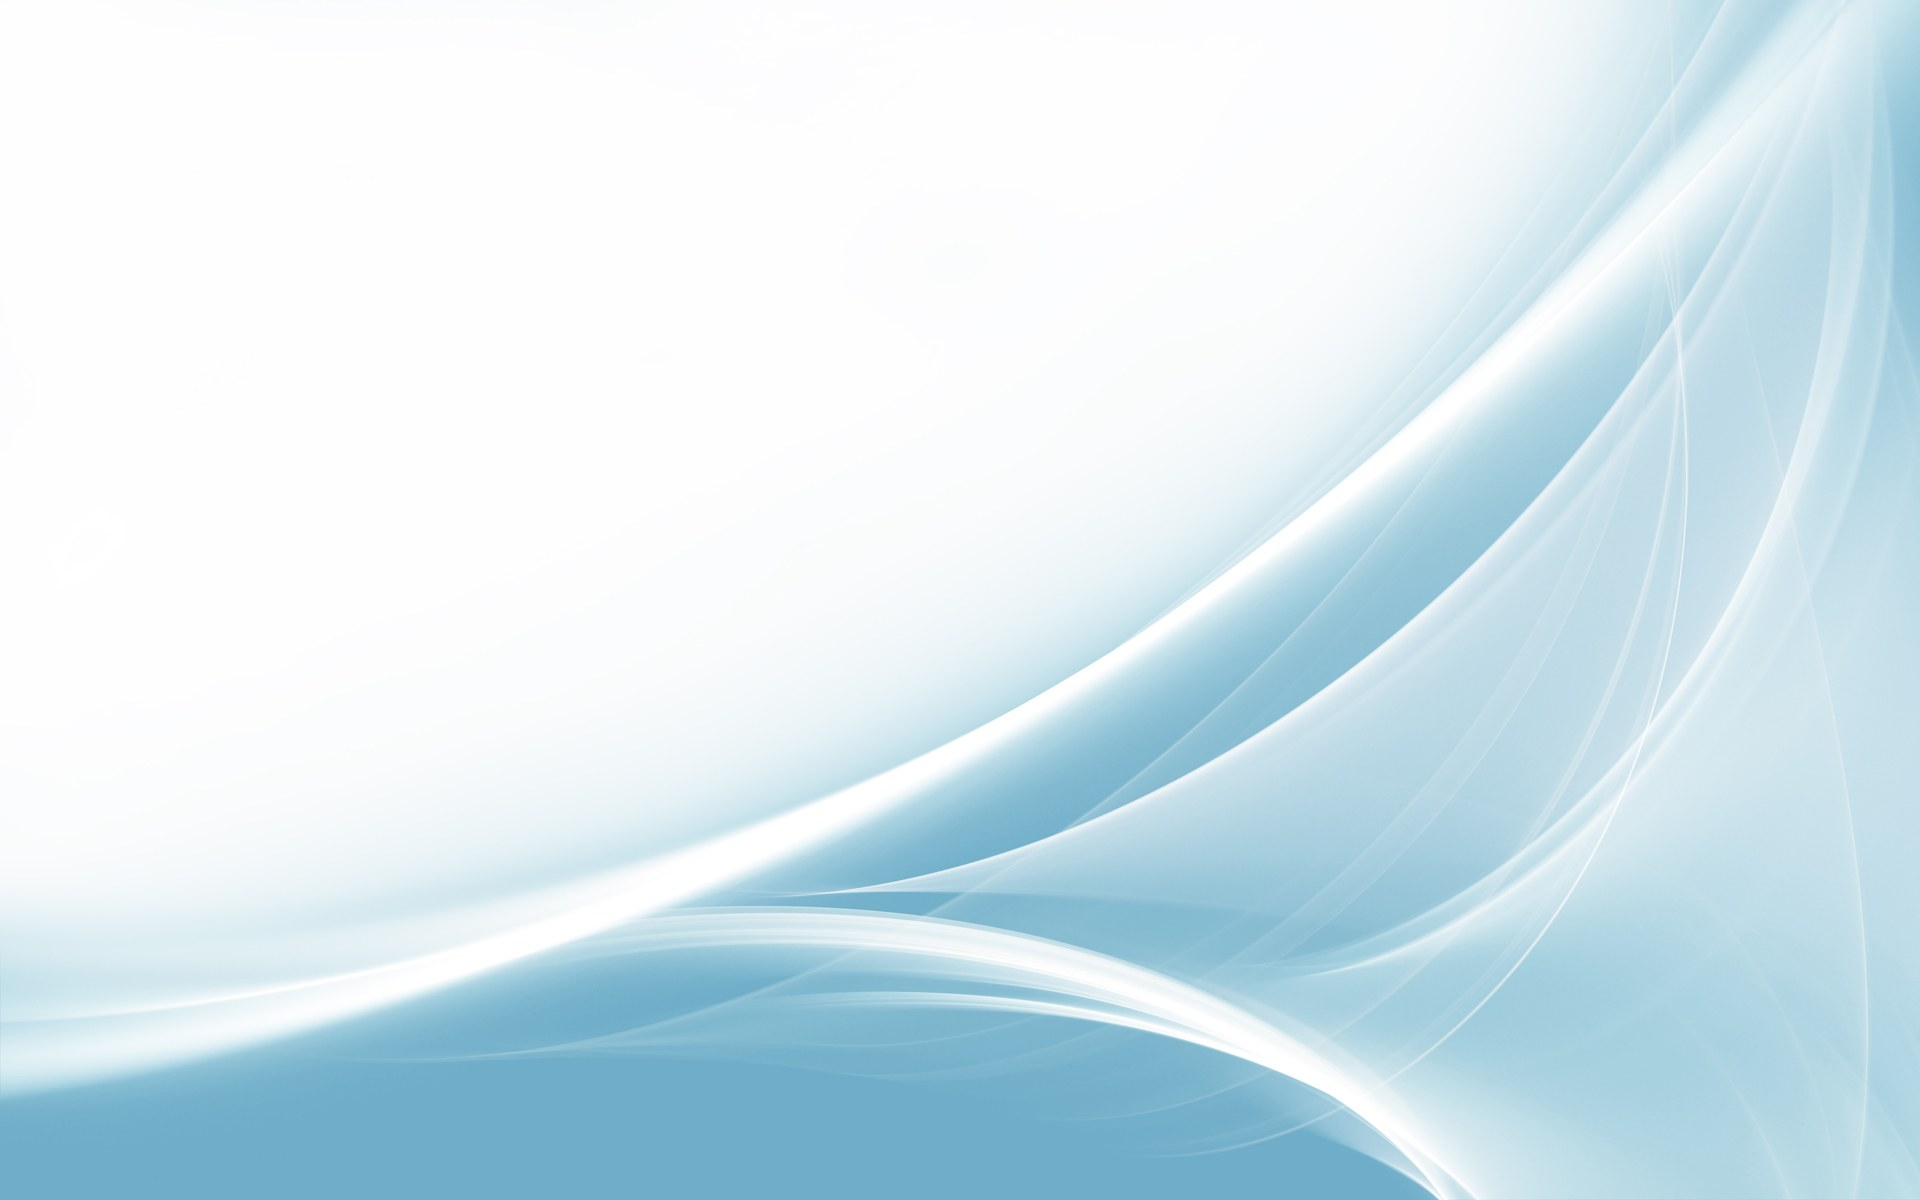 Abstract Backgrounds Blue 2179 Hd Wallpapers In  Imagesci